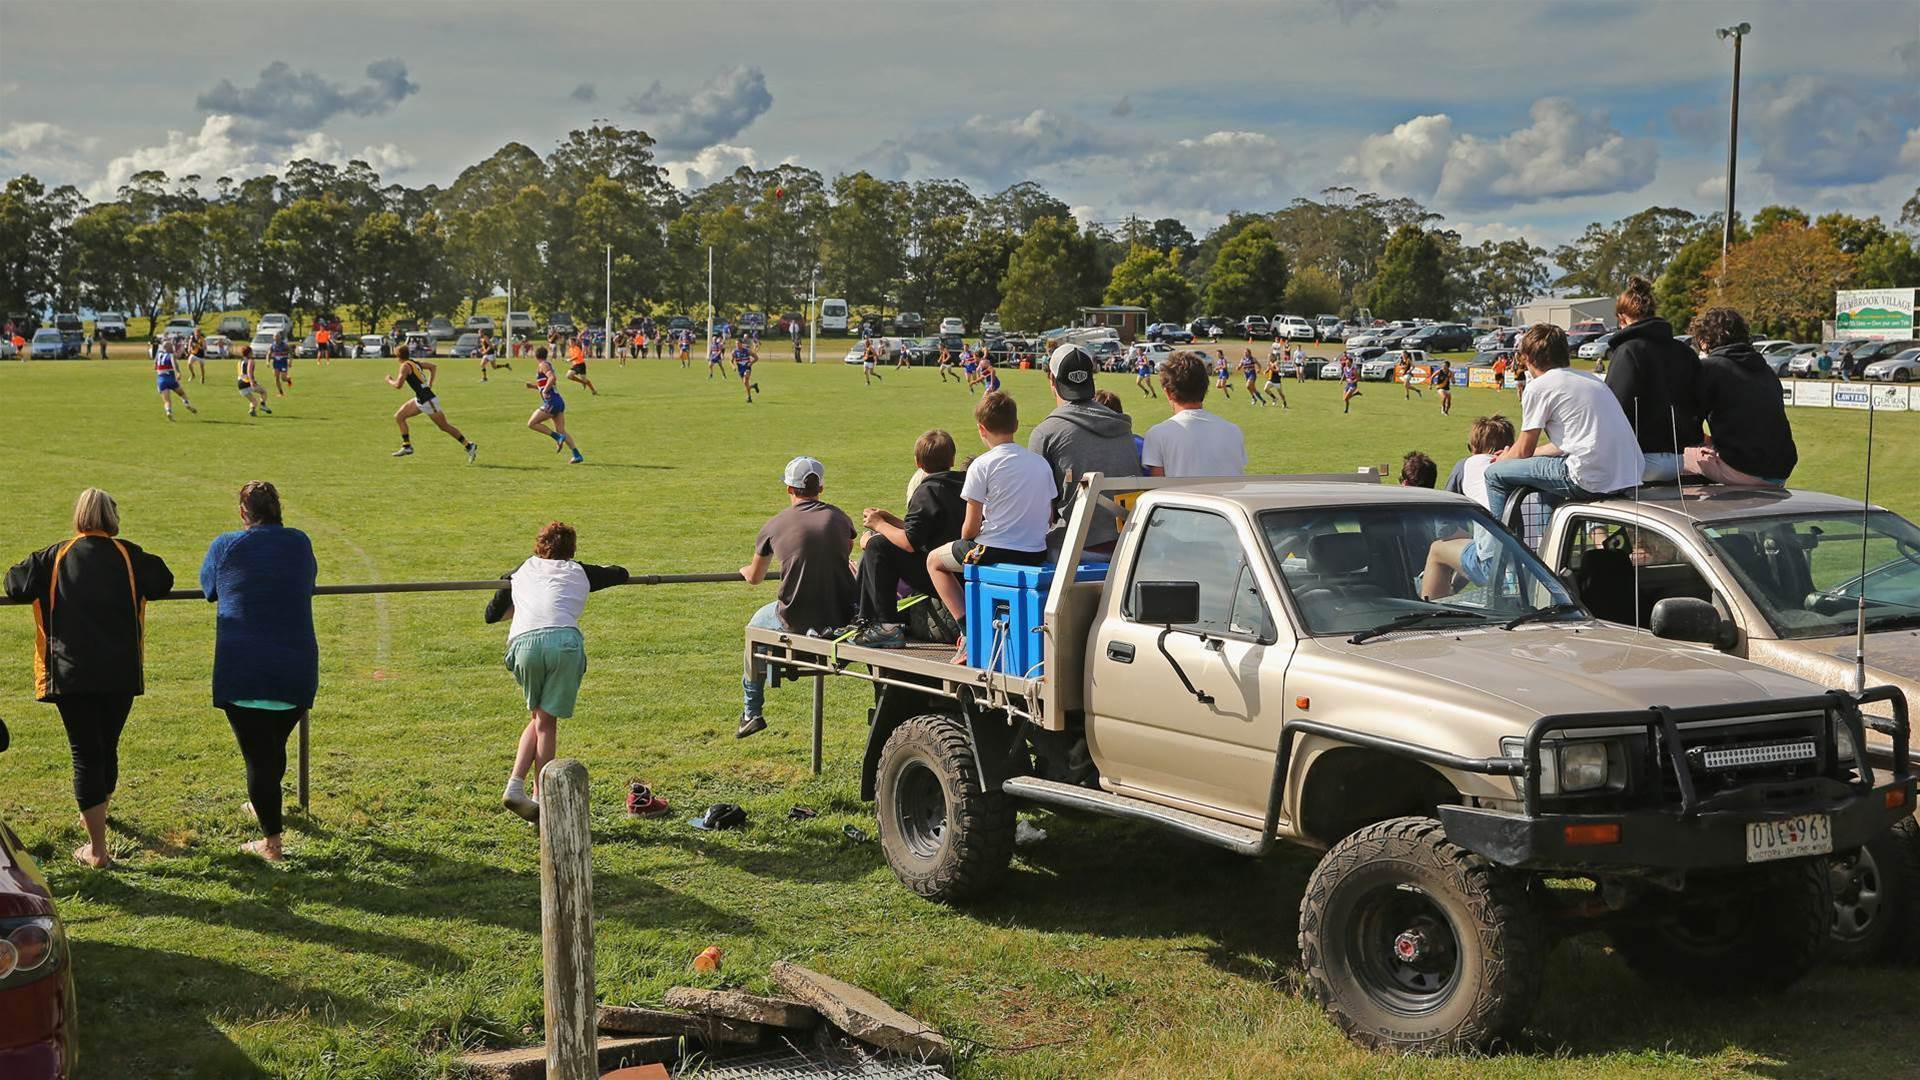 A game in a paddock: thoughts on footy in the country